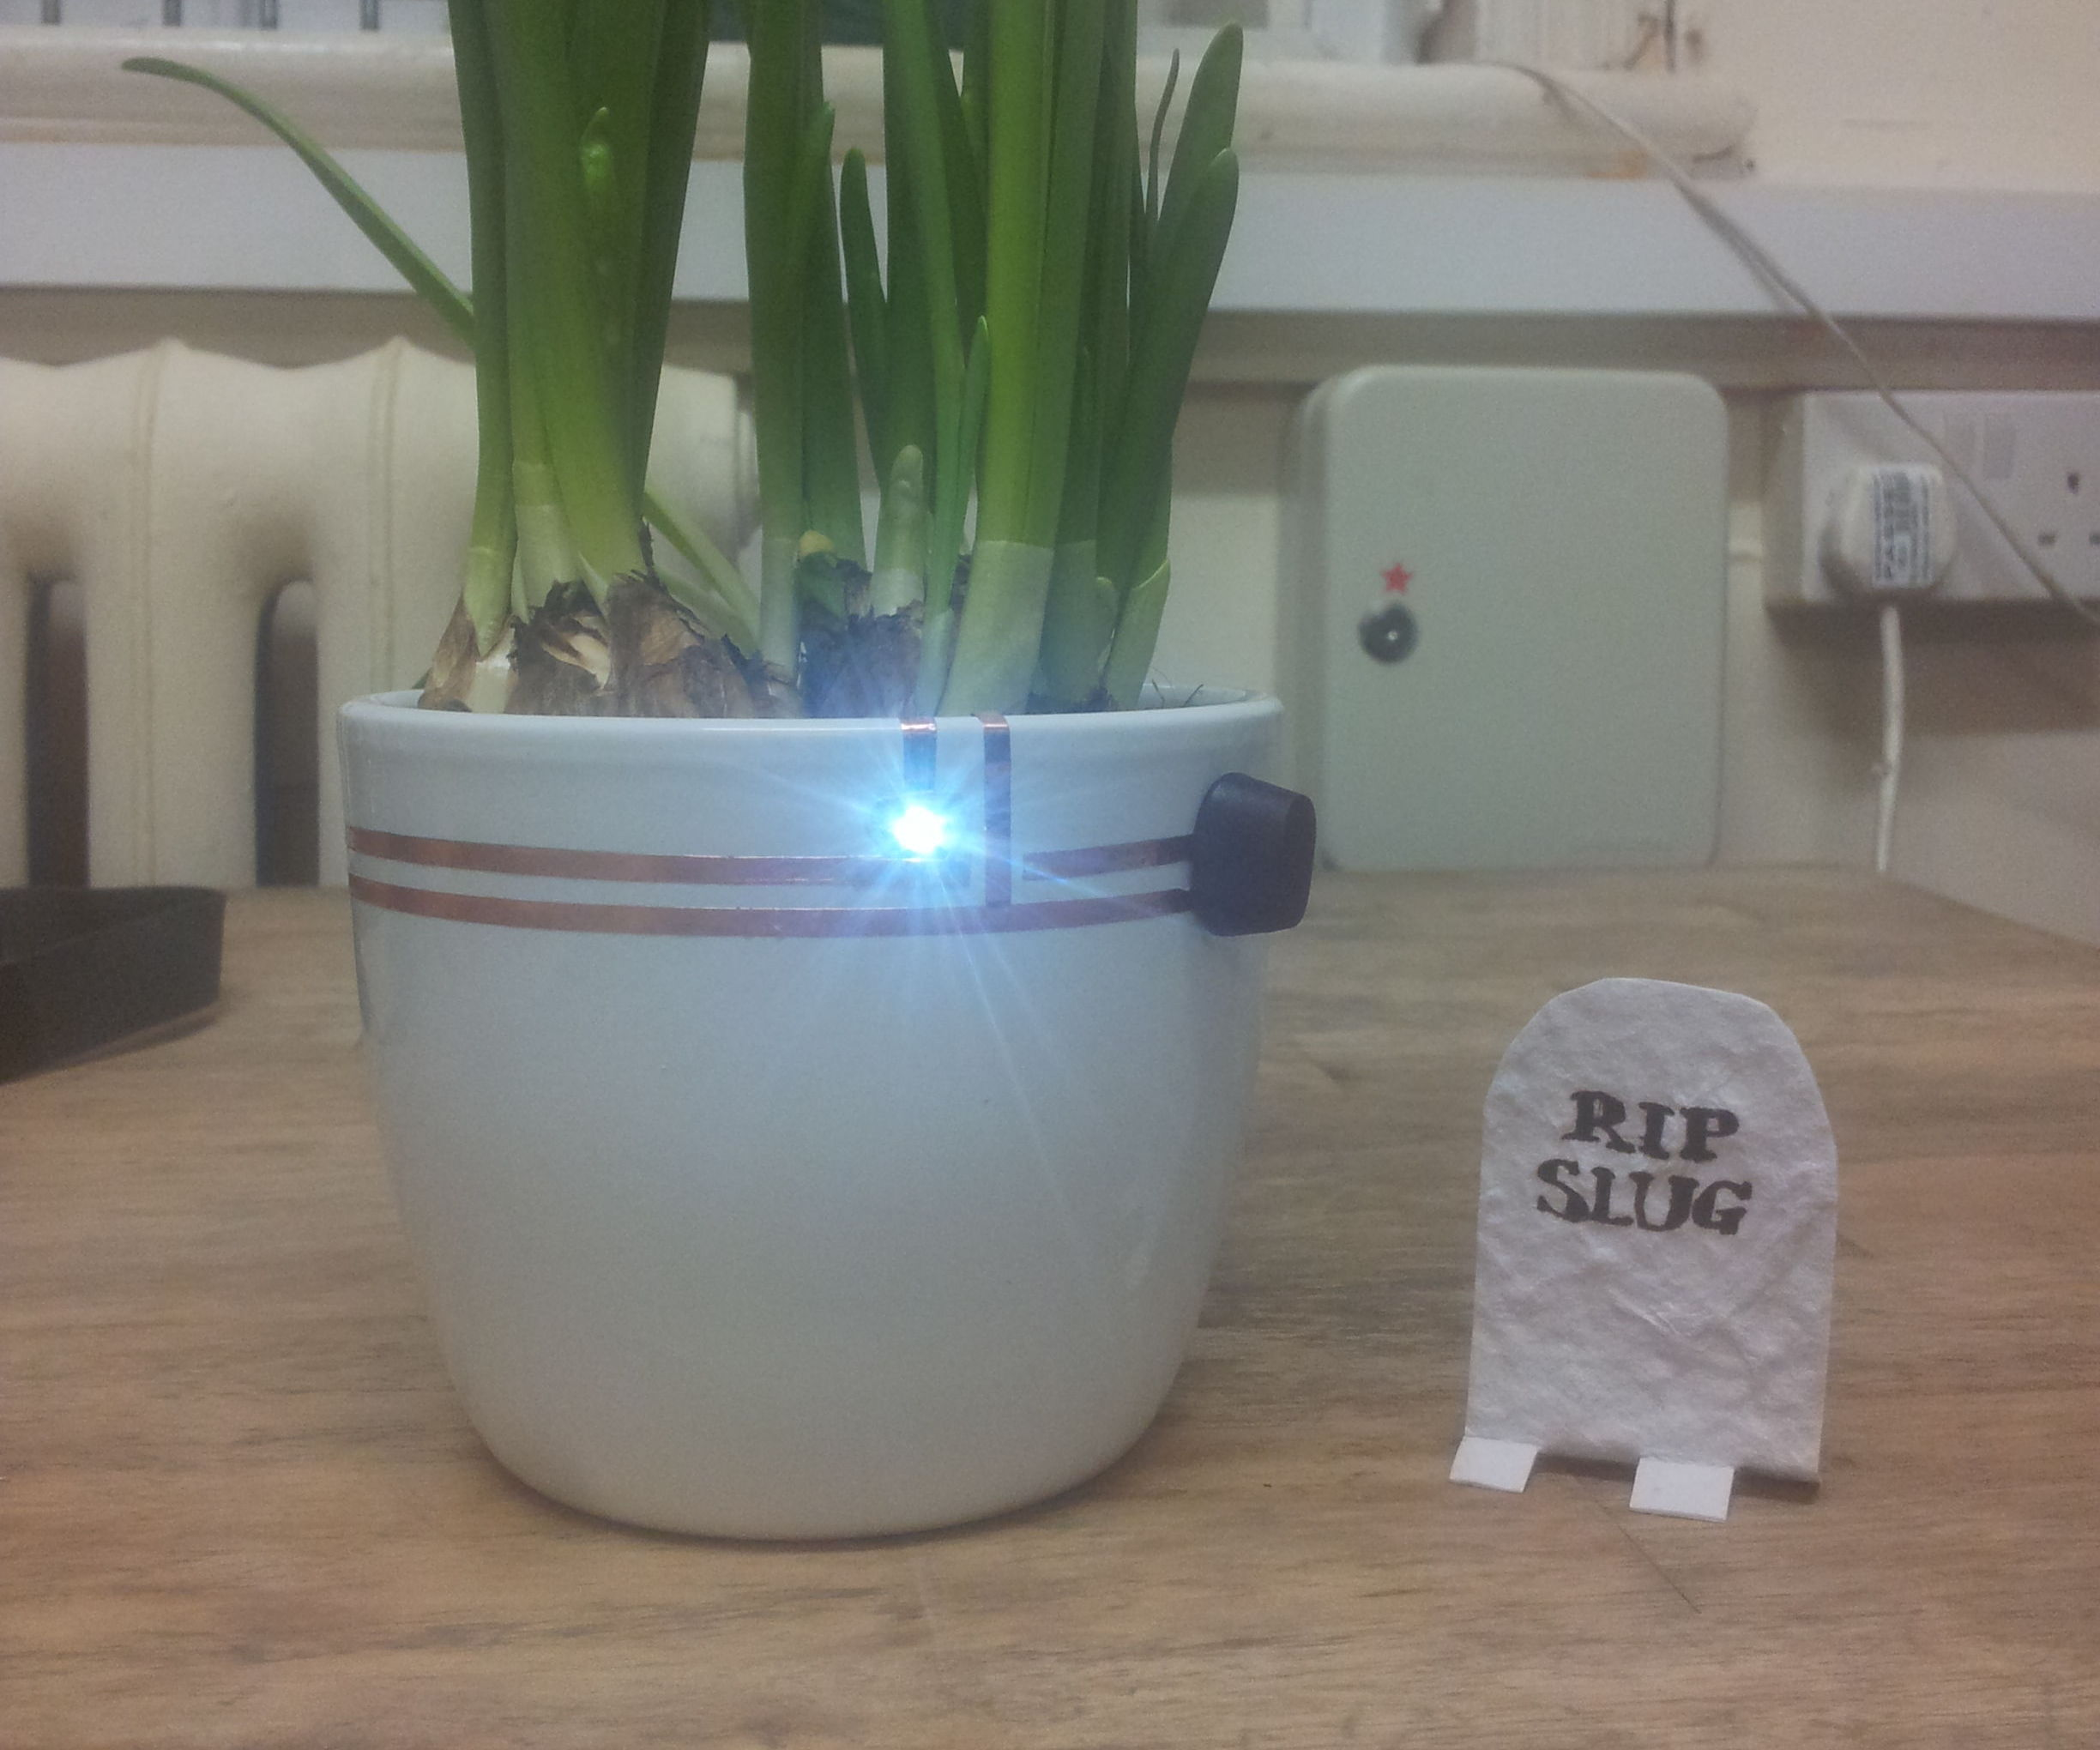 Slugitronics - protecting plants with chibitronics